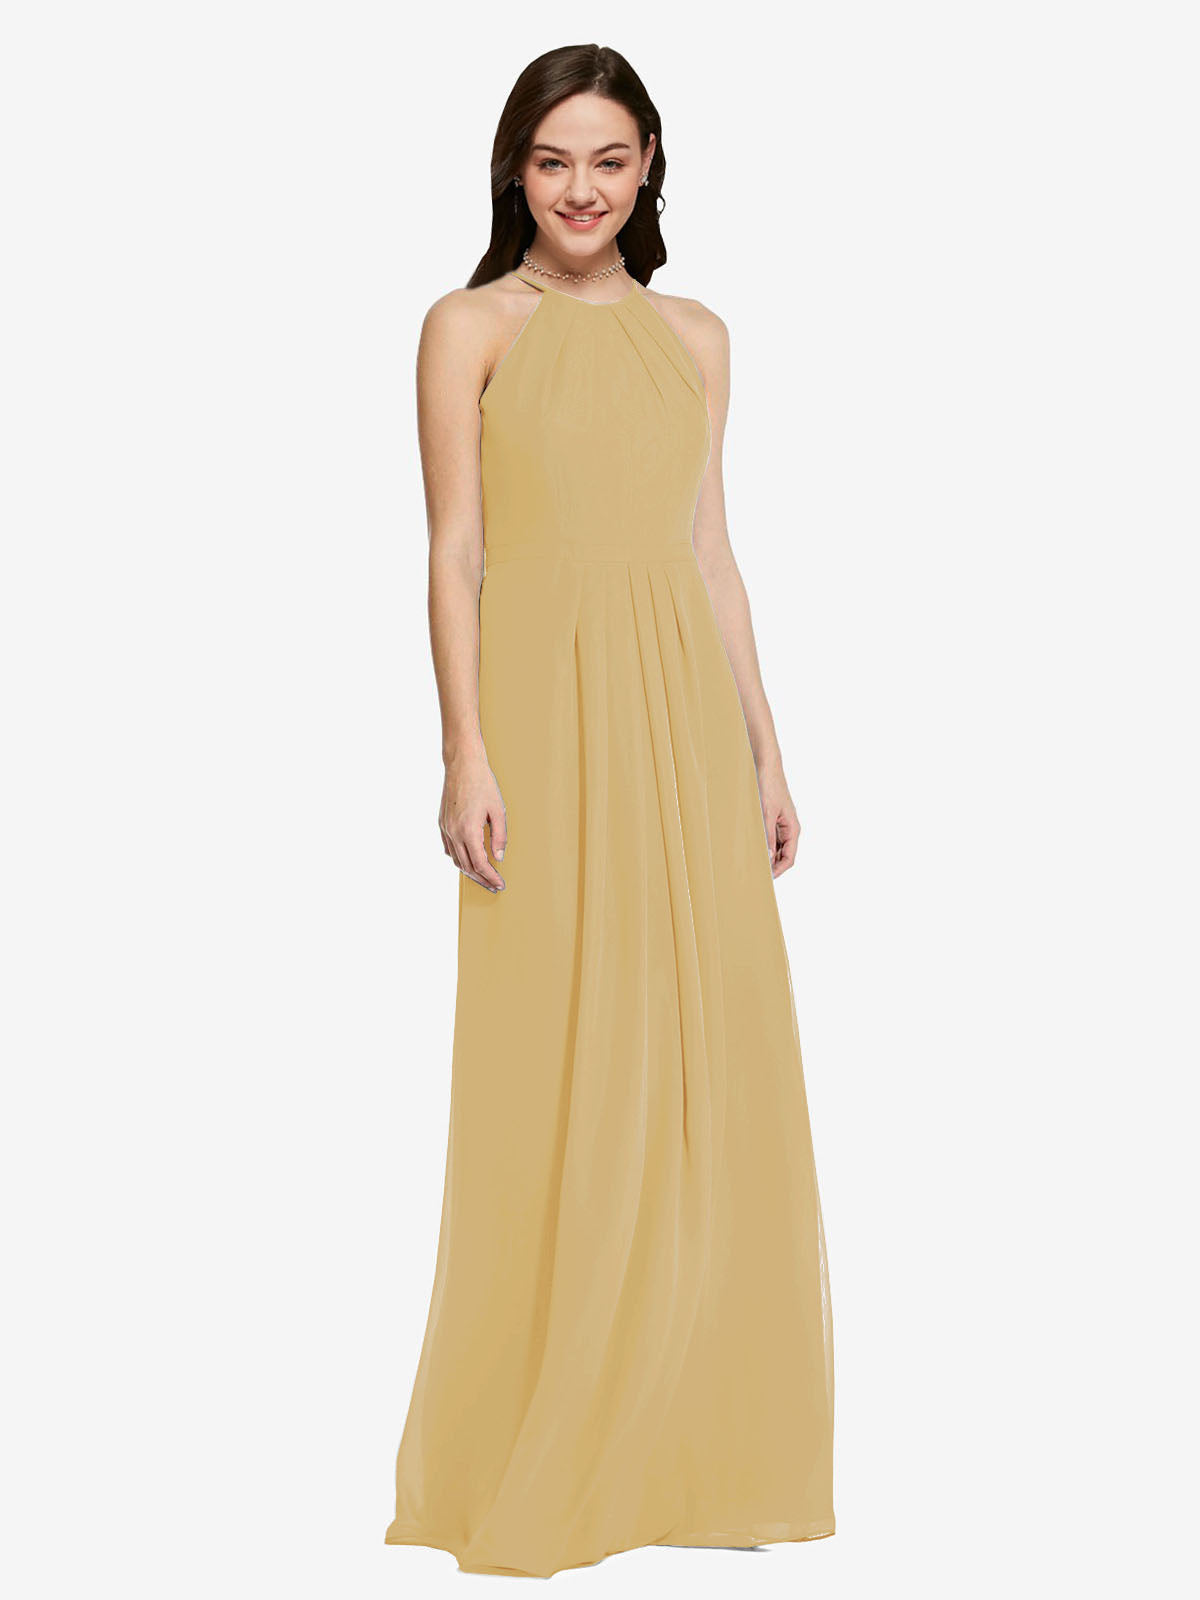 Long Sheath High Neck Halter Sleeveless Gold Chiffon Bridesmaid Dress Koloti